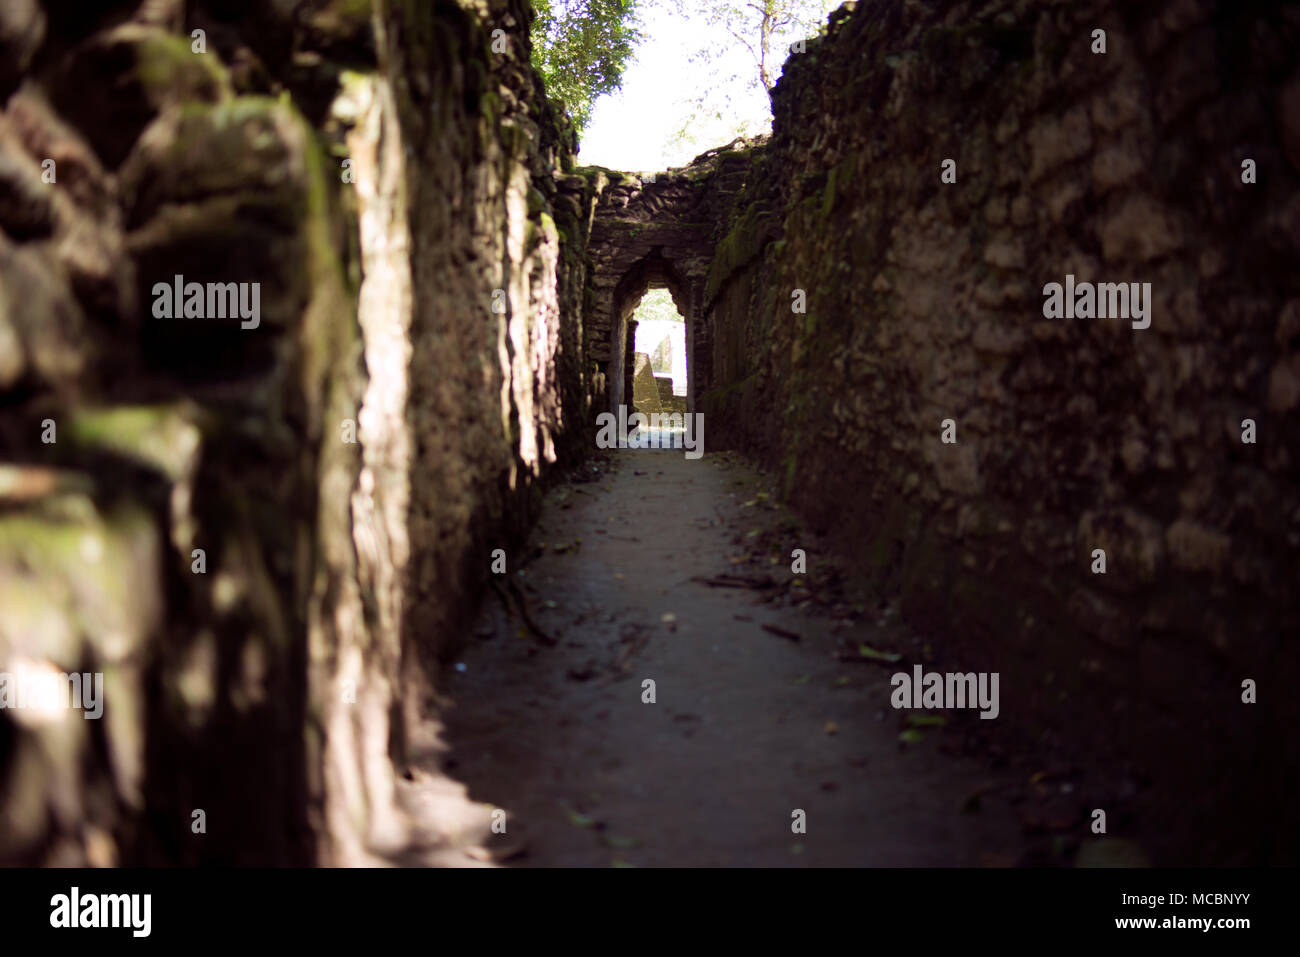 A walkway leading to an arch at the ancient Mayan site of Cahal Pech, western Belize. - Stock Image